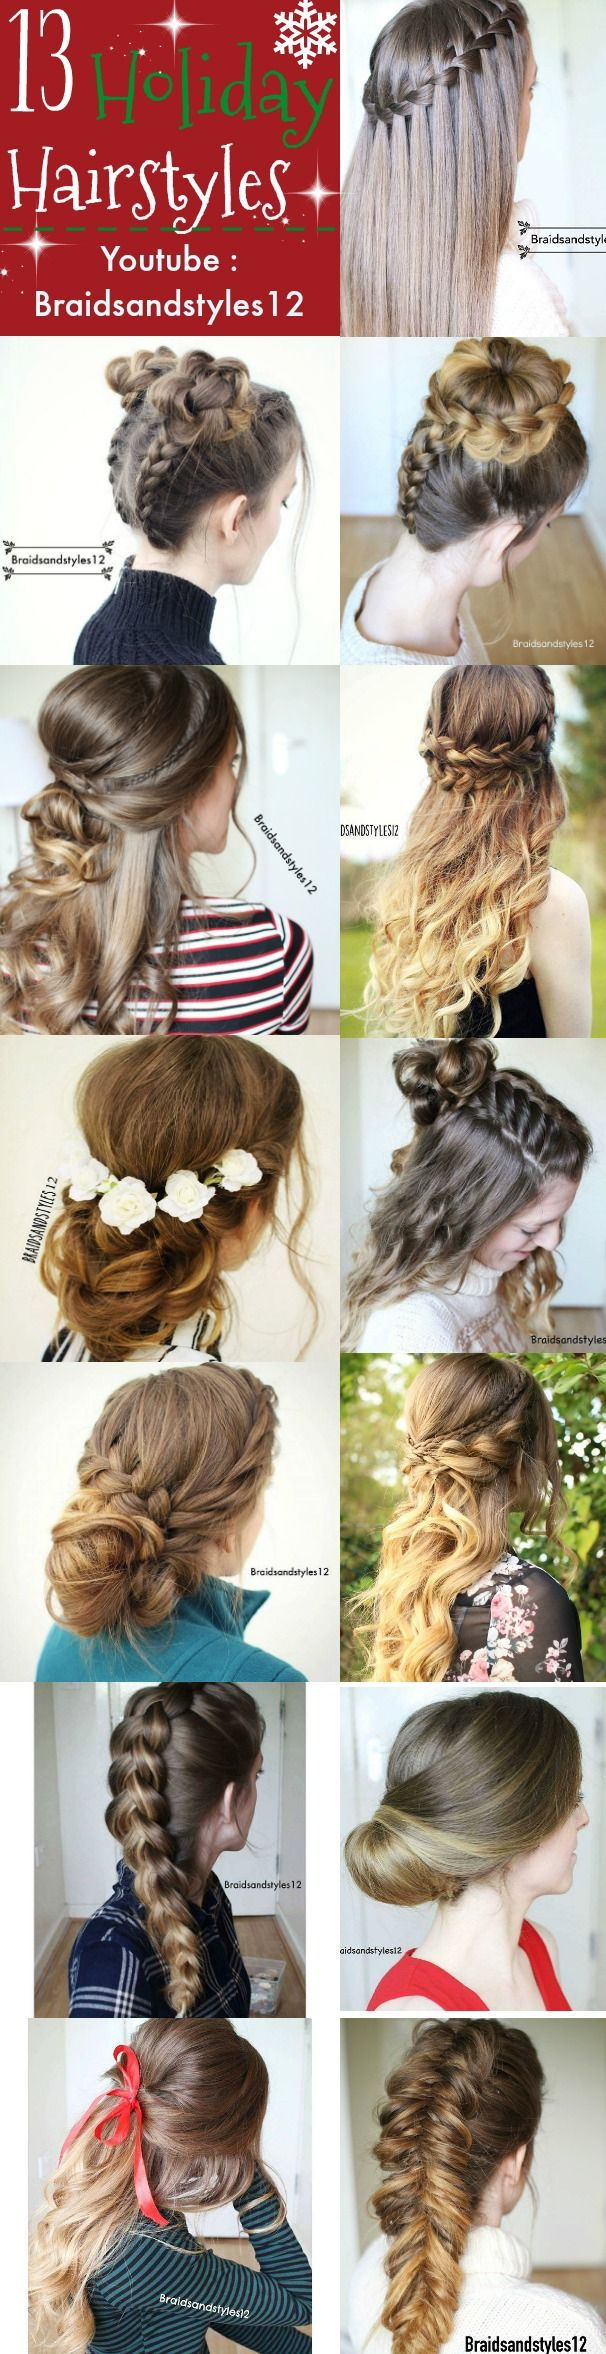 best 25+ holiday hairstyles ideas on pinterest | videos of